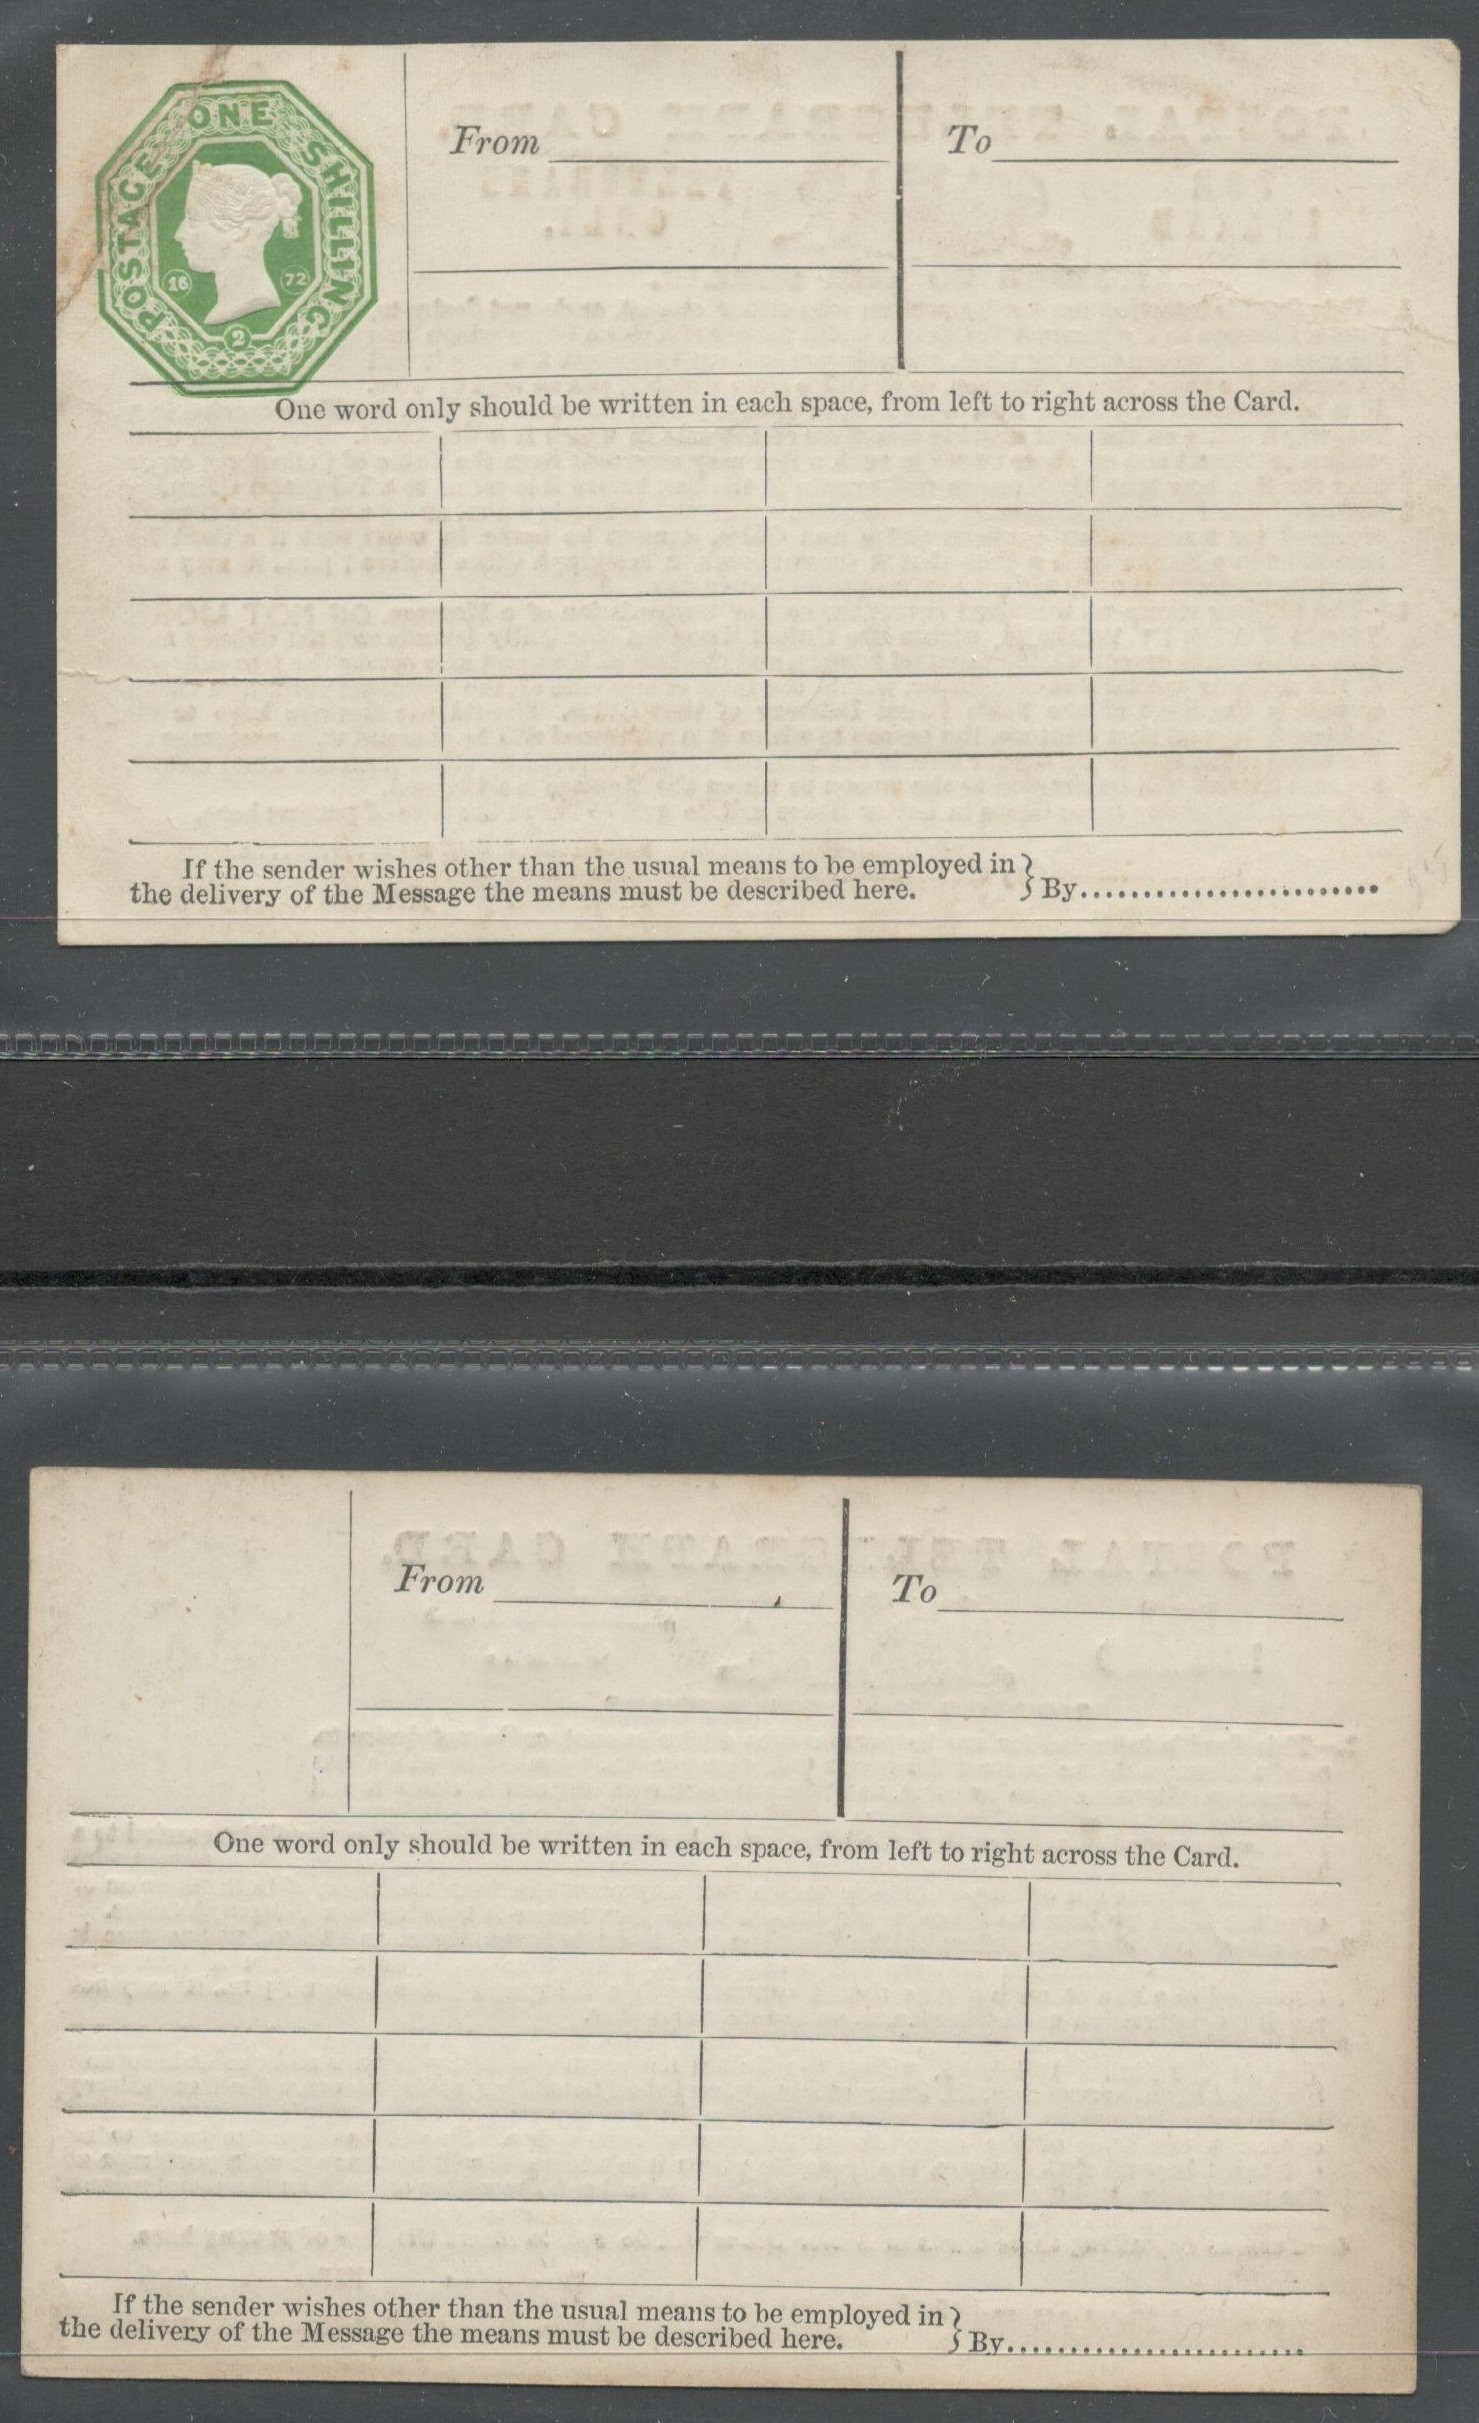 QV POSTAL TELEGRAPH CARDS (ONE WITH EMBOSSED 1 SHILLING STAMP) FOR INLAND TELEGRAMS ONLY (2)